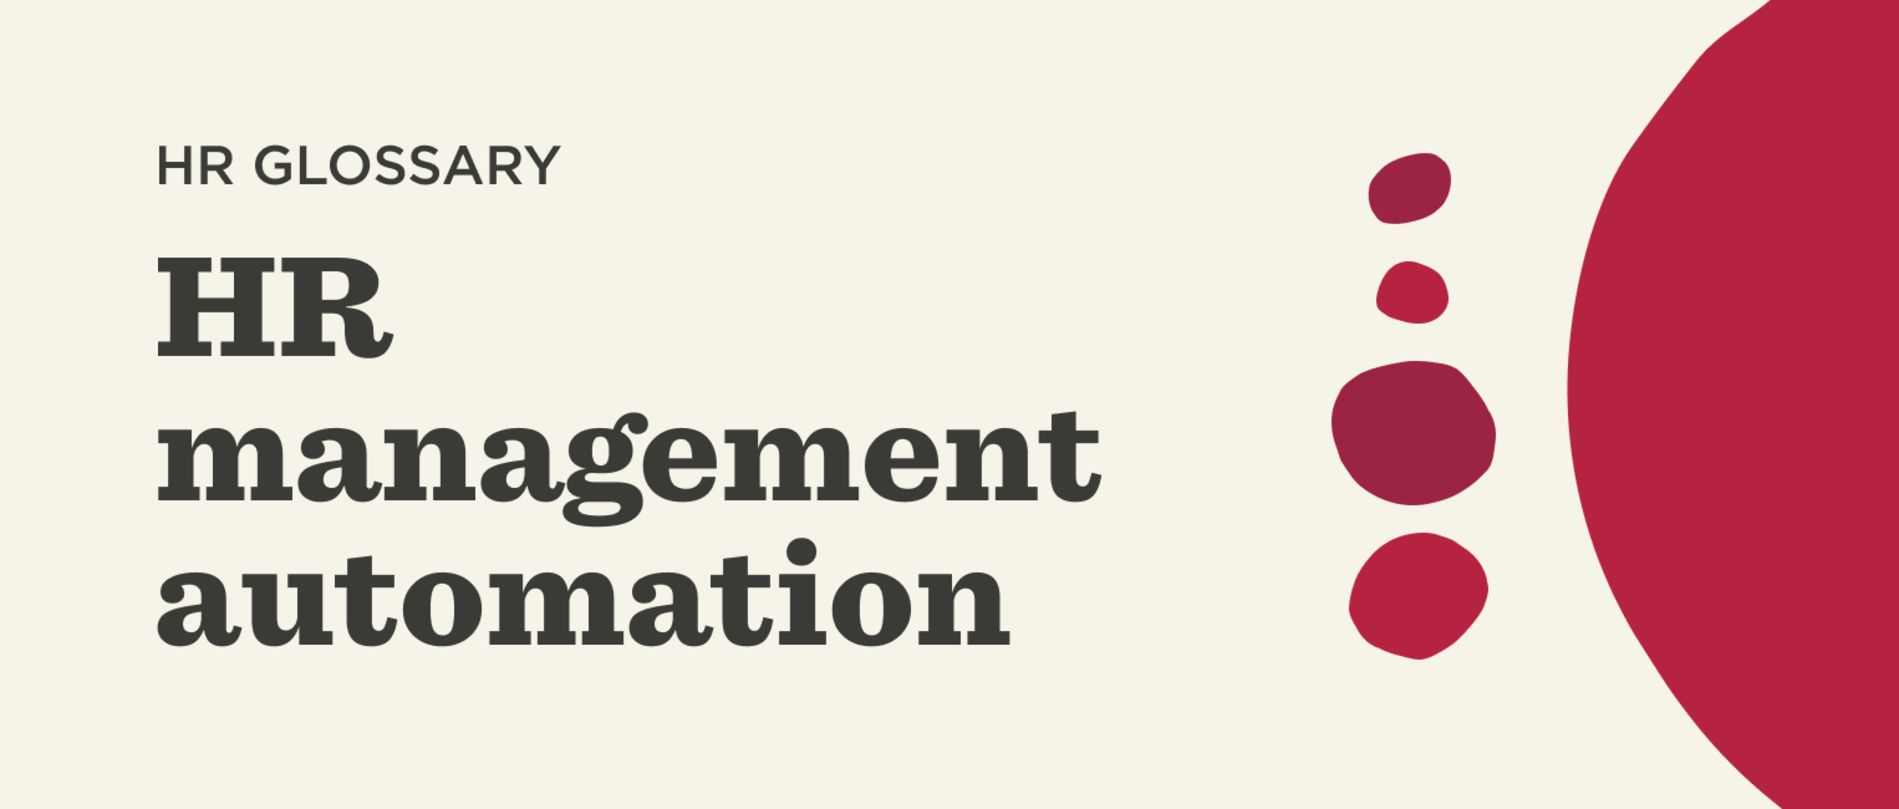 HR-management-automation-Glossary-banner